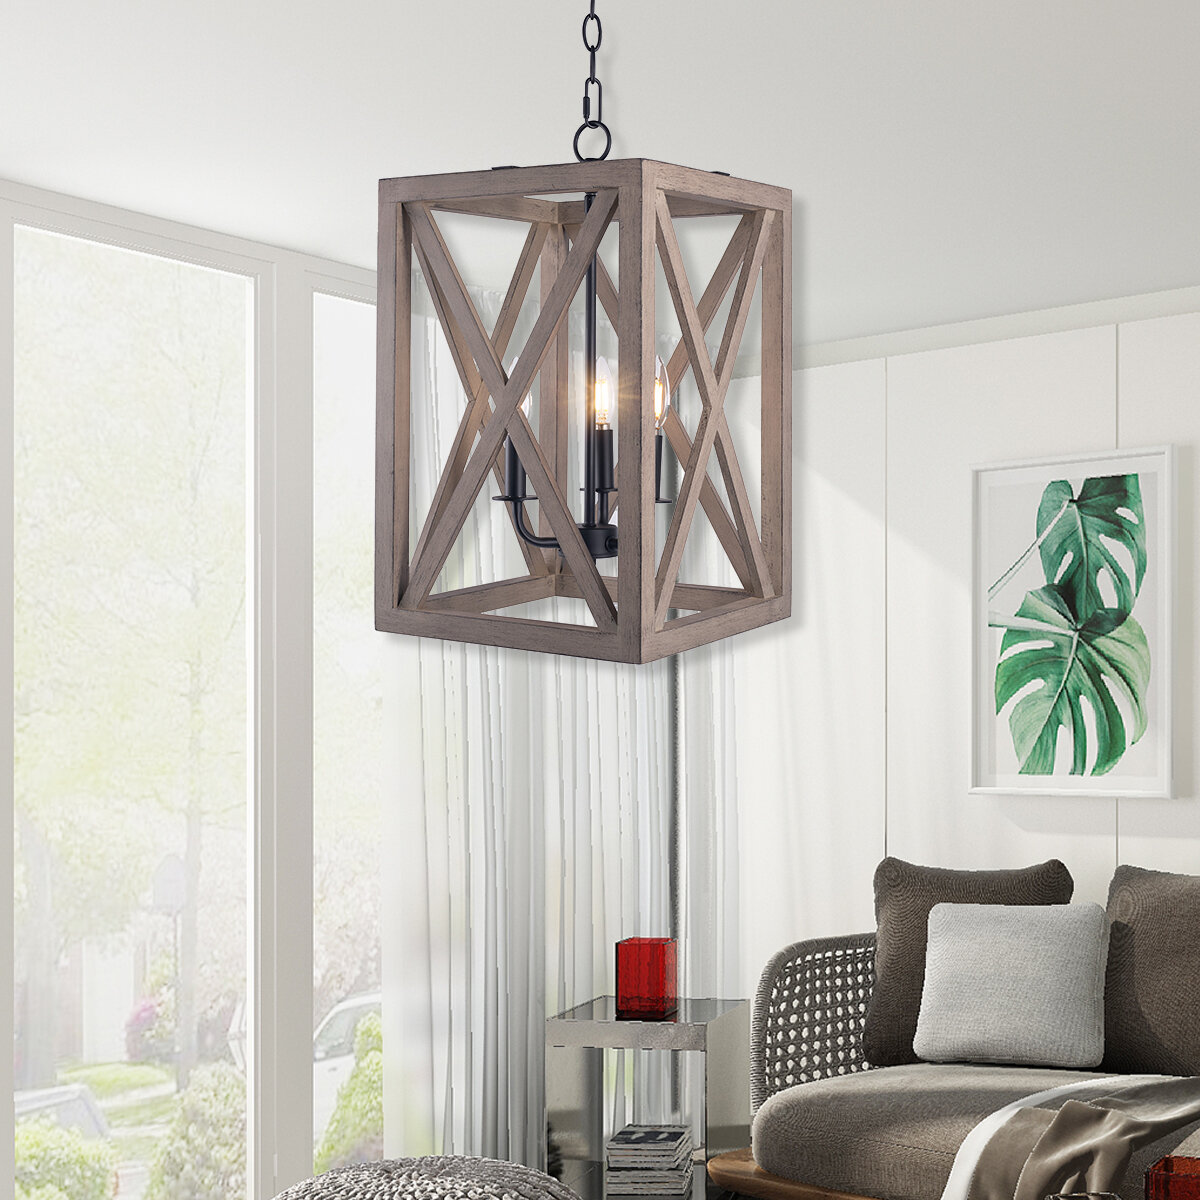 Gracie Oaks Ramseur 3 Light Candle Style Rectangle Chandelier With Rope Accents Wayfair